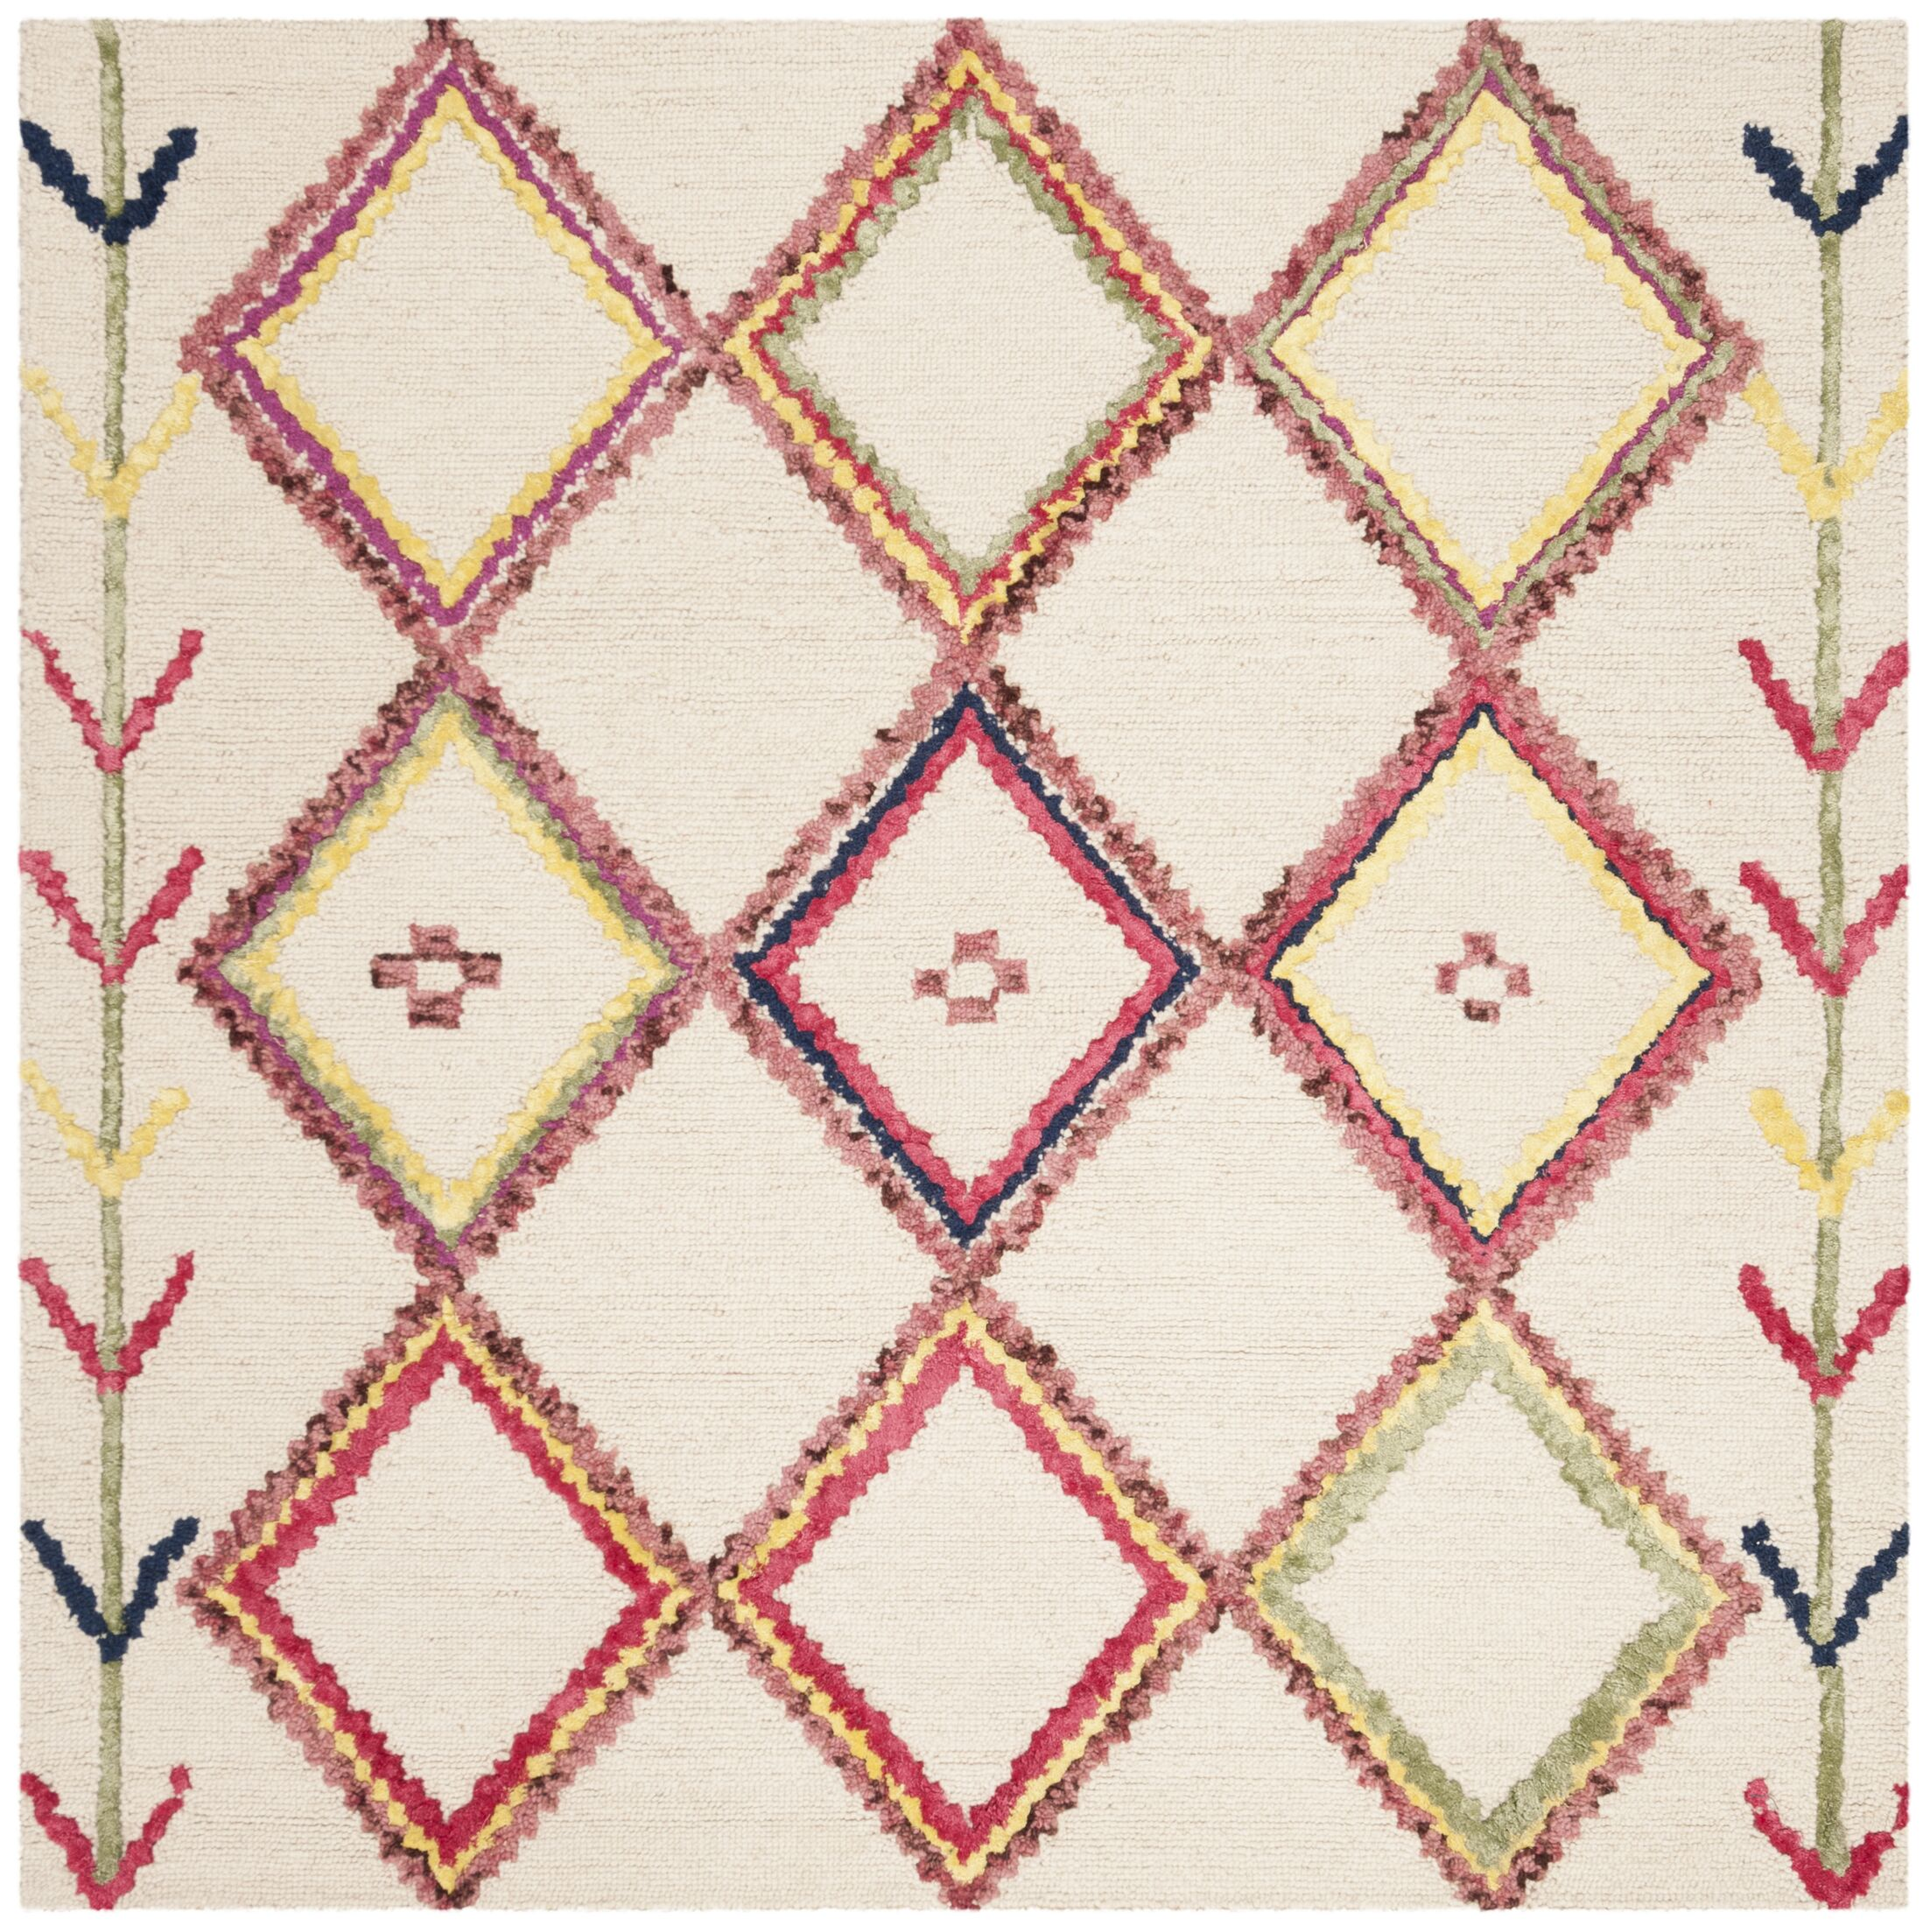 Juney Hand-Tufted Wool Ivory Area Rug Rug Size: Square 5'